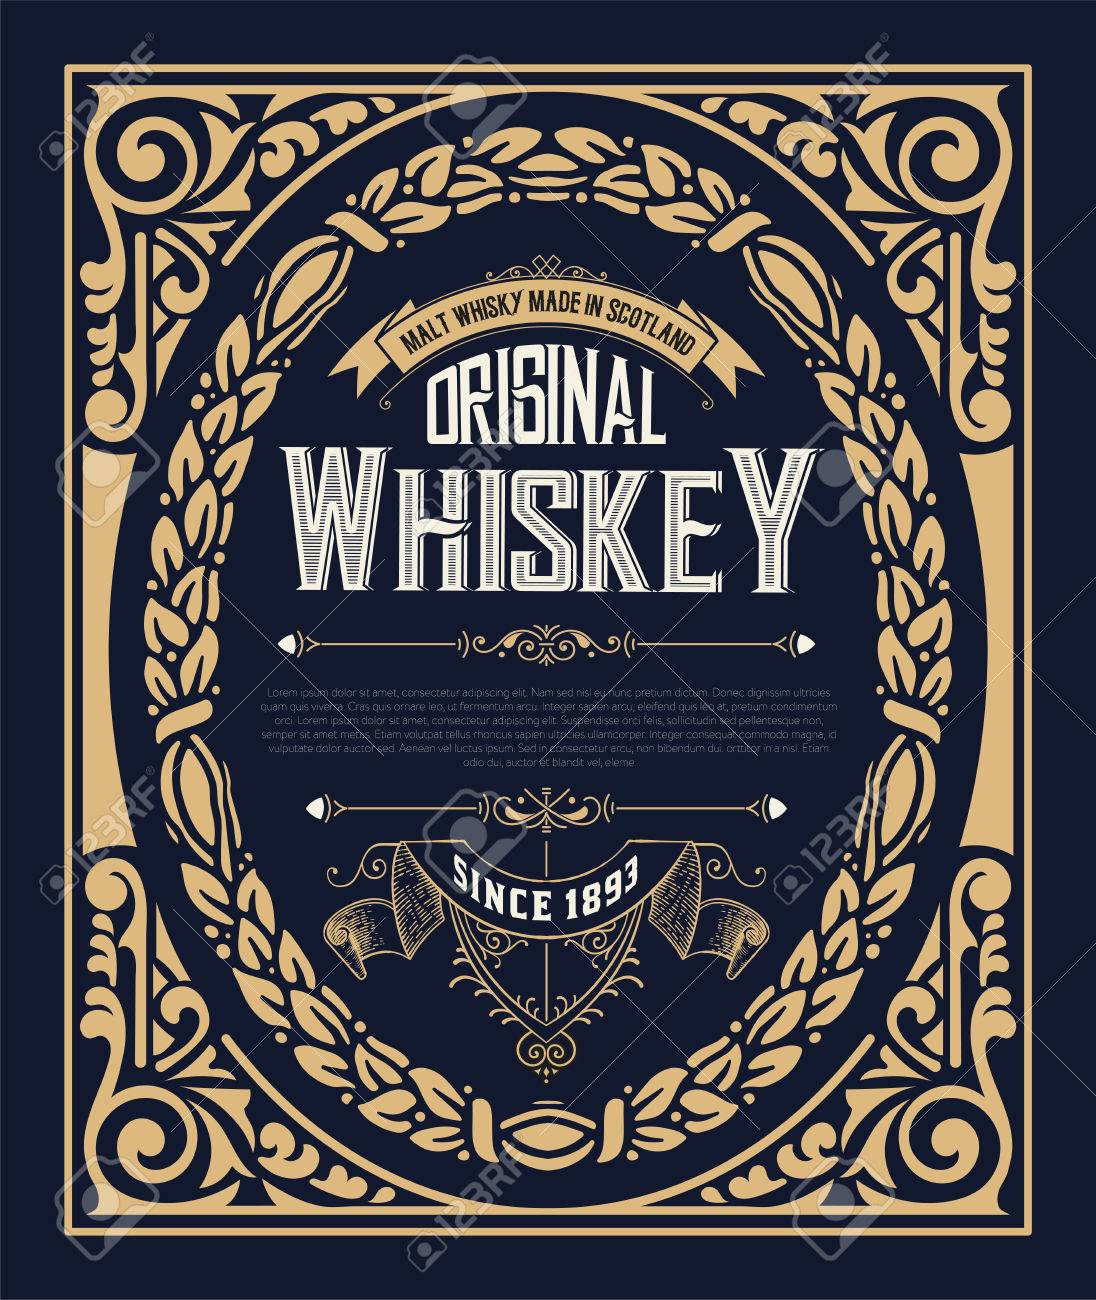 old vintage whiskey label design royalty free cliparts vectors and